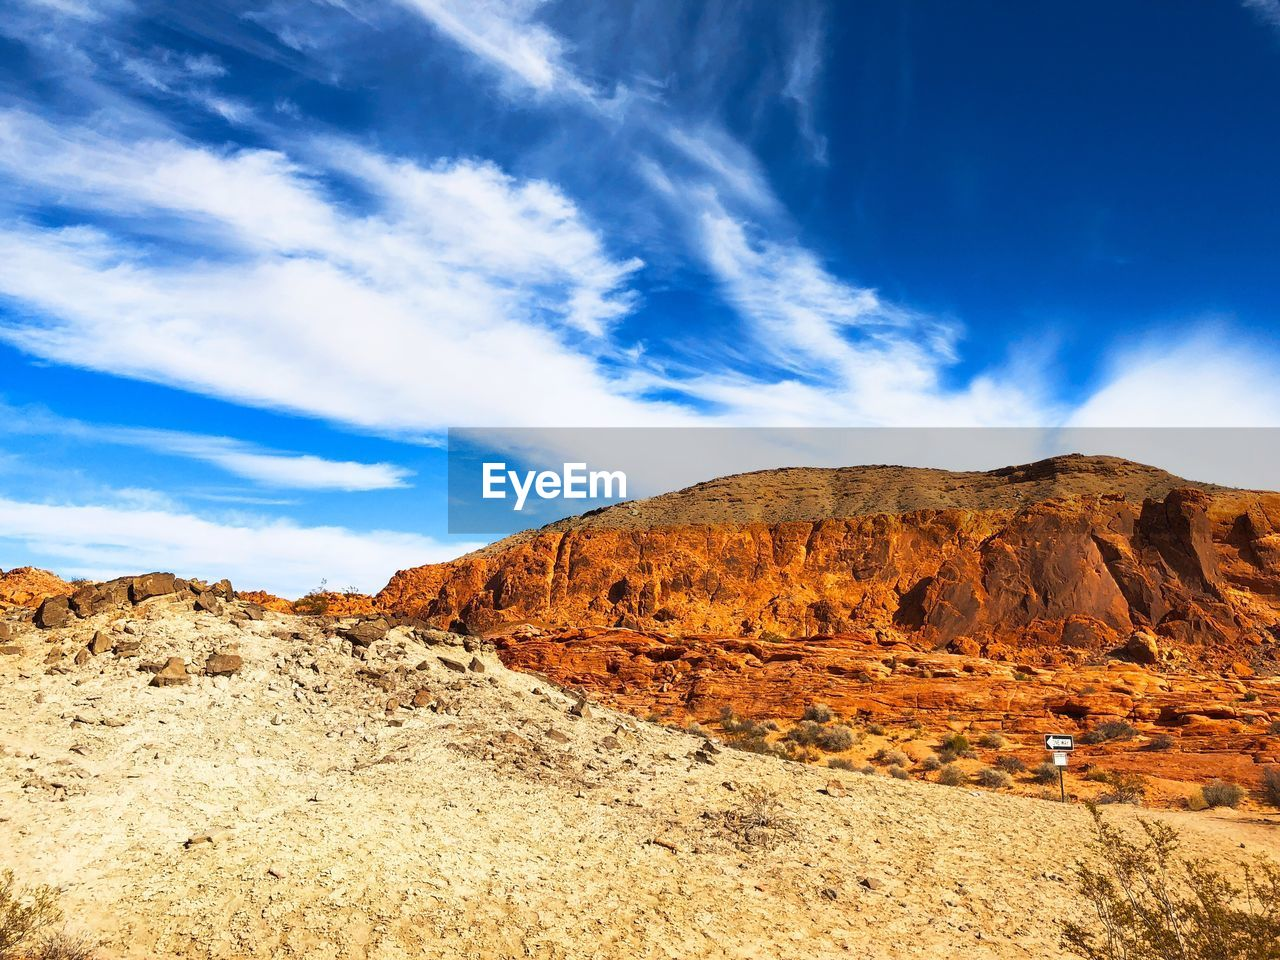 sky, scenics - nature, tranquil scene, cloud - sky, beauty in nature, tranquility, mountain, non-urban scene, environment, rock, landscape, nature, blue, desert, rock formation, remote, rock - object, mountain range, no people, idyllic, climate, arid climate, formation, outdoors, eroded